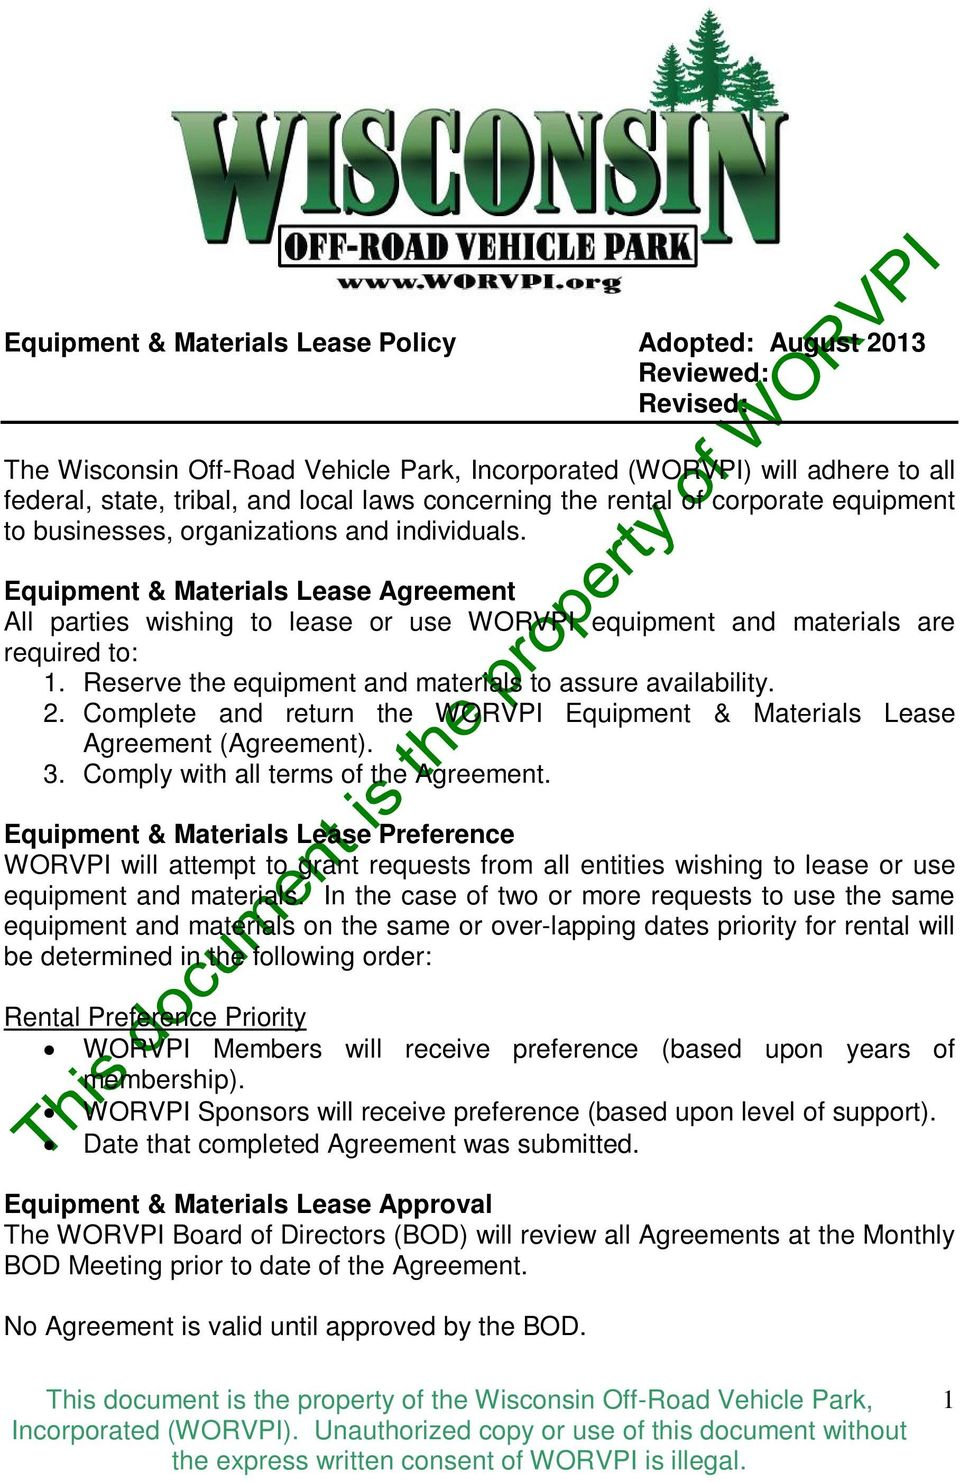 Equipment & Materials Lease Agreement All parties wishing to lease or use WORVPI equipment and materials are required to: 1. Reserve the equipment and materials to assure availability. 2.